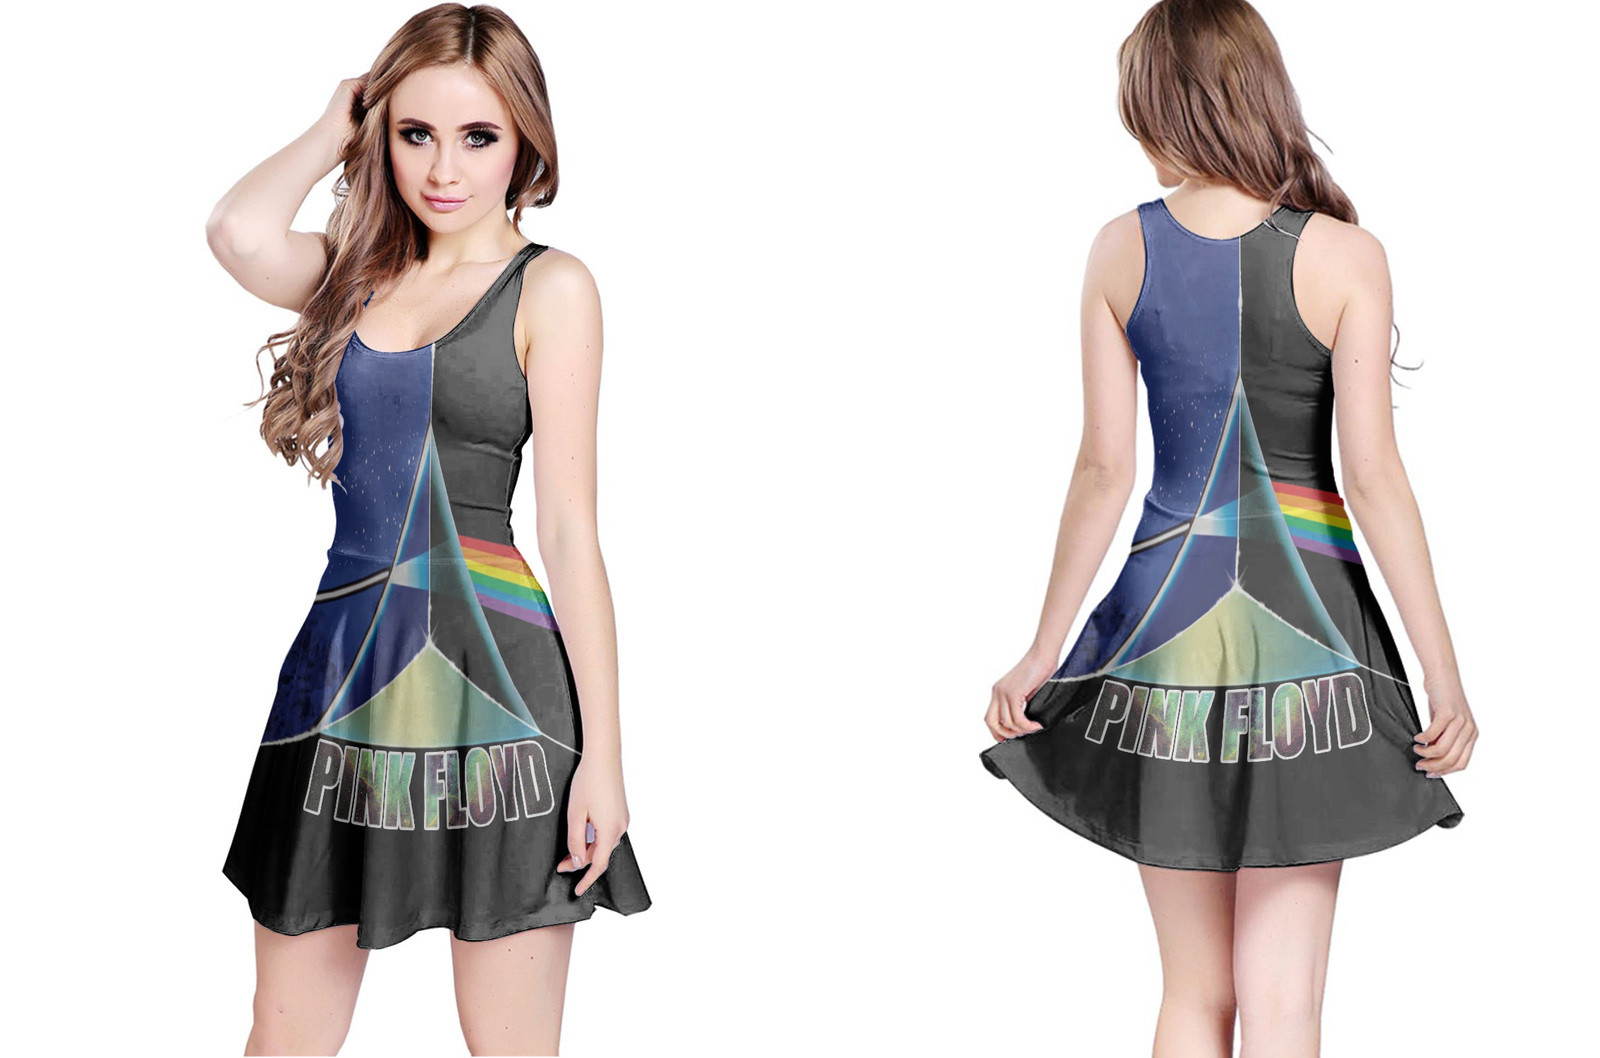 Primary image for Pink Floyd Reversible Dress